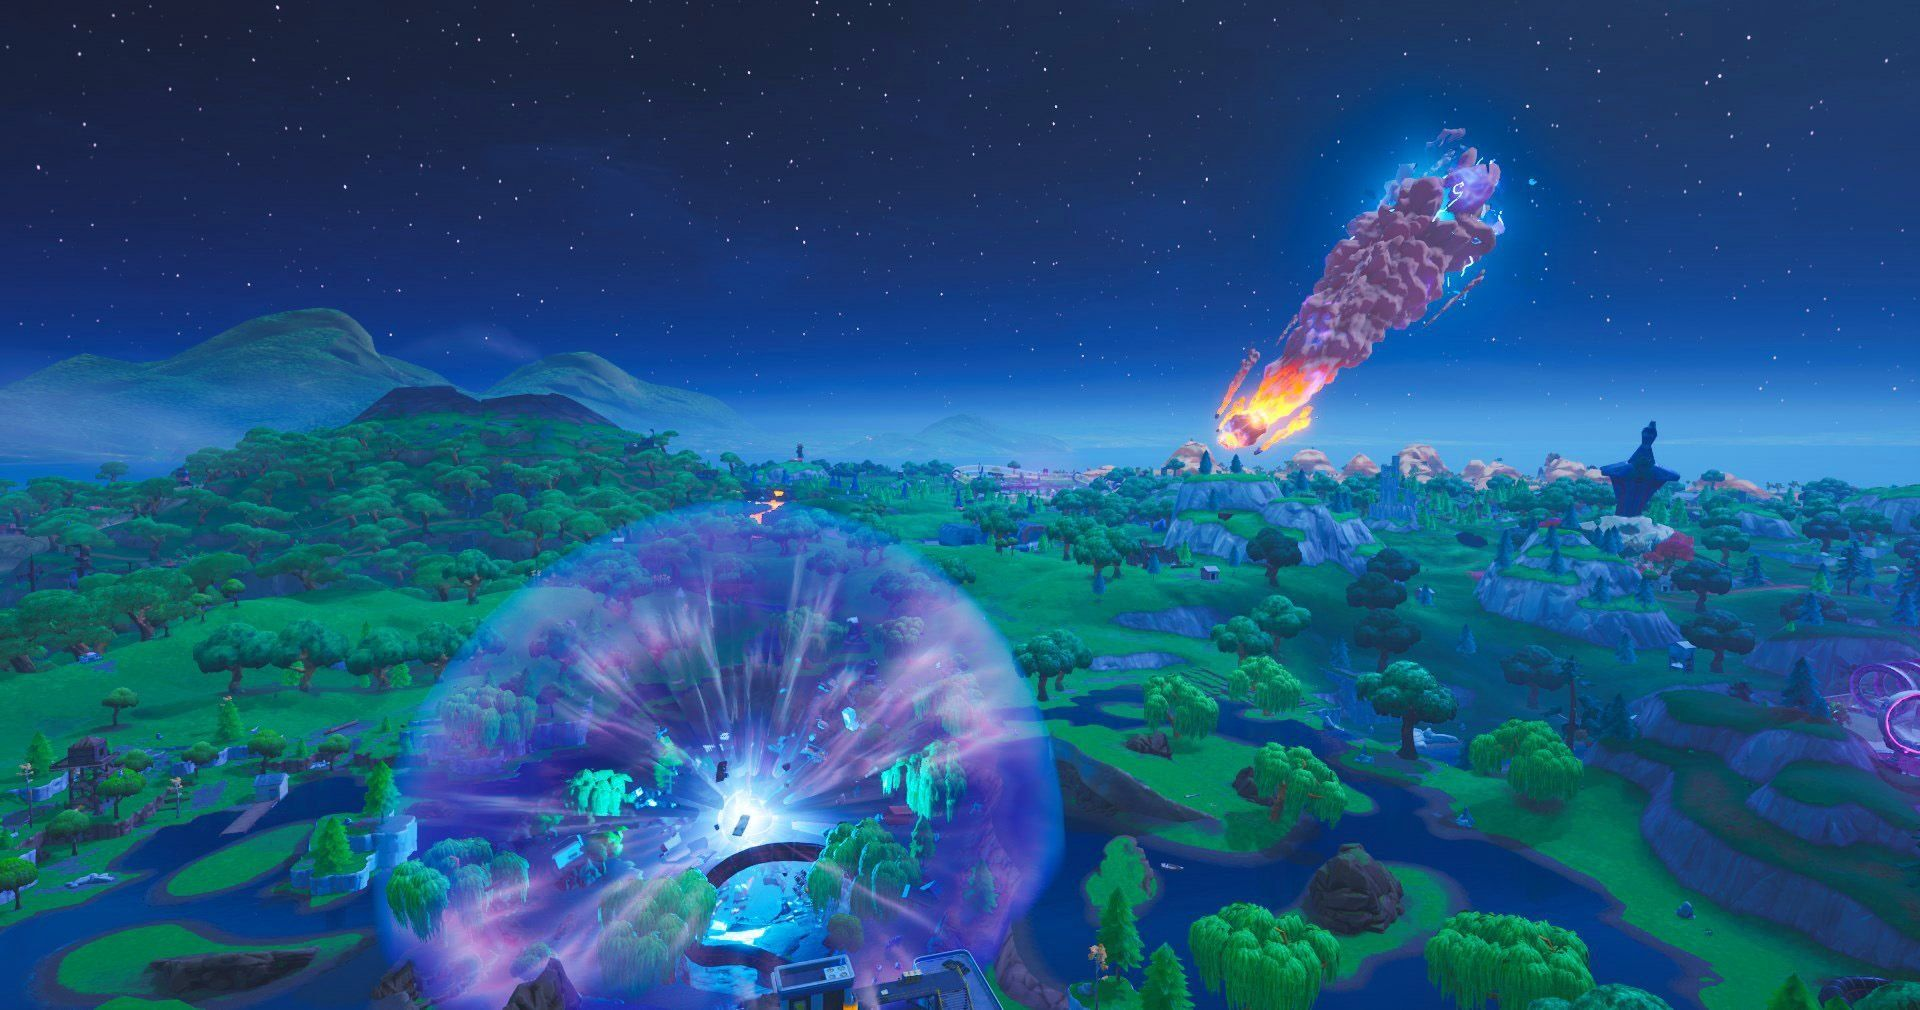 The Zero Point Fortnite Wallpapers Wallpaper Cave The zero point is an important storyline object in battle royale. the zero point fortnite wallpapers